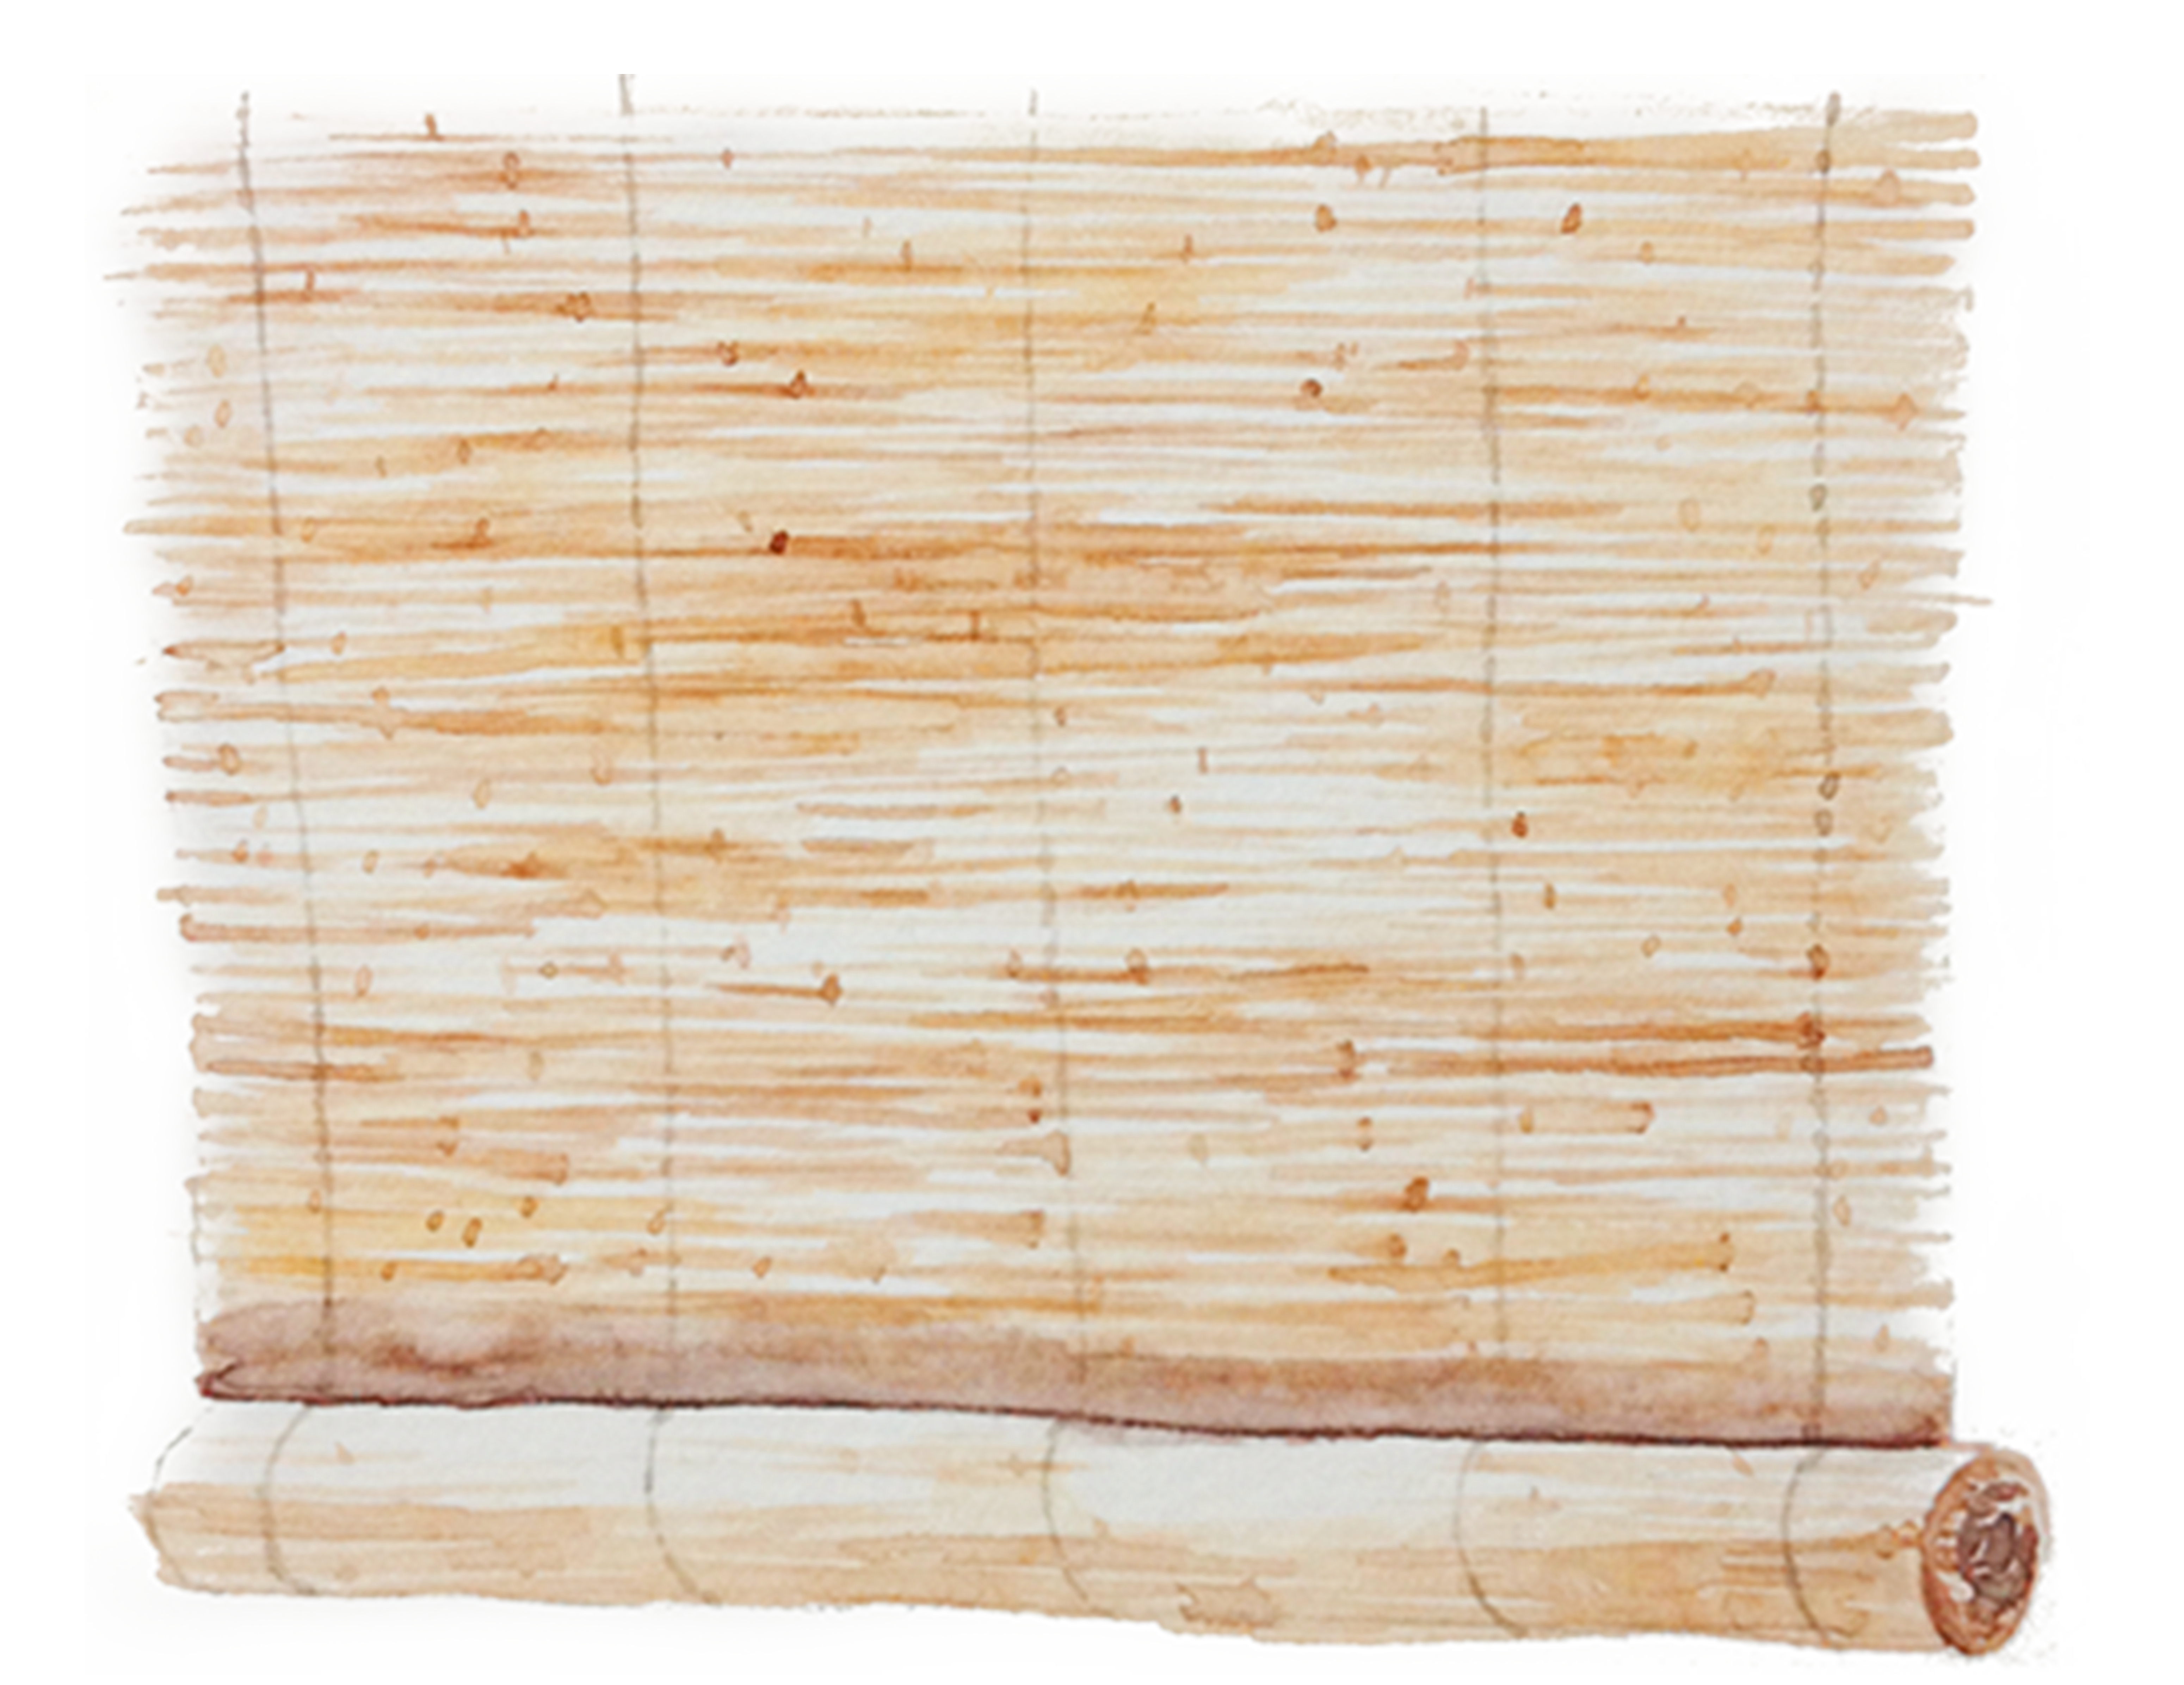 Bamboo texture png. Sushi download watercolor grass